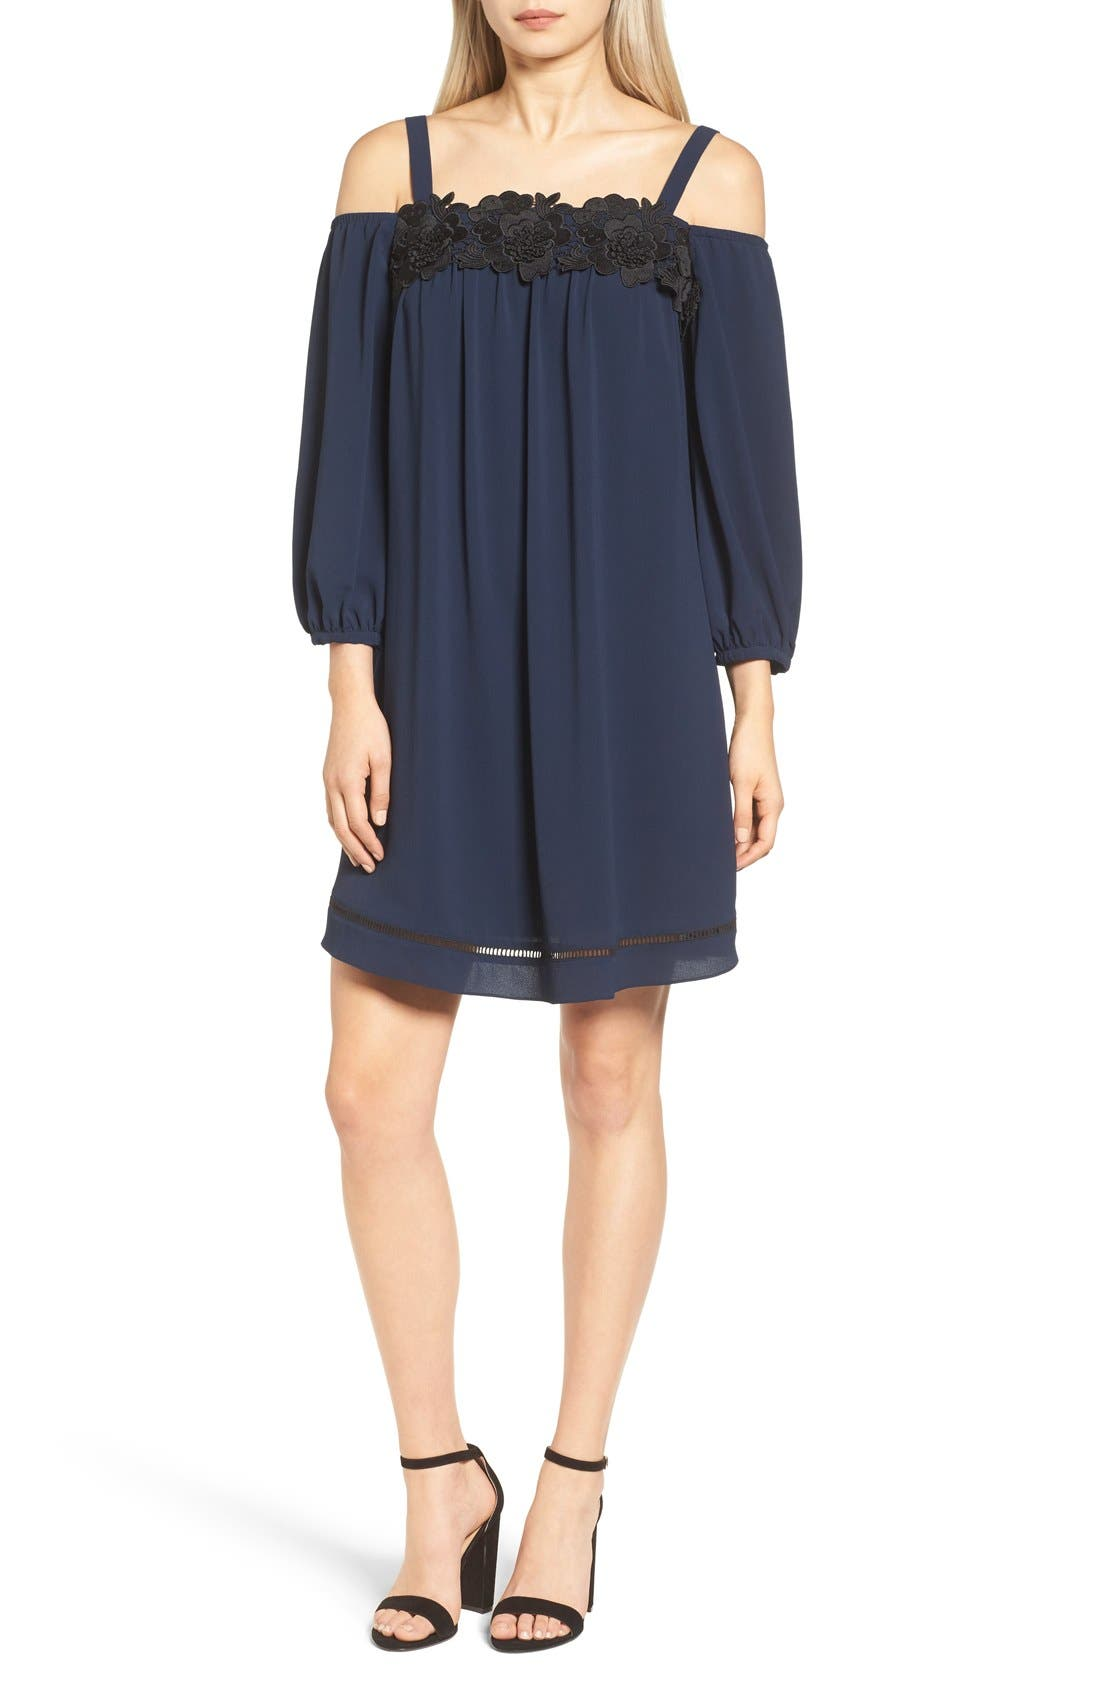 Main Image - Chelsea28 Cold Shoulder Dress